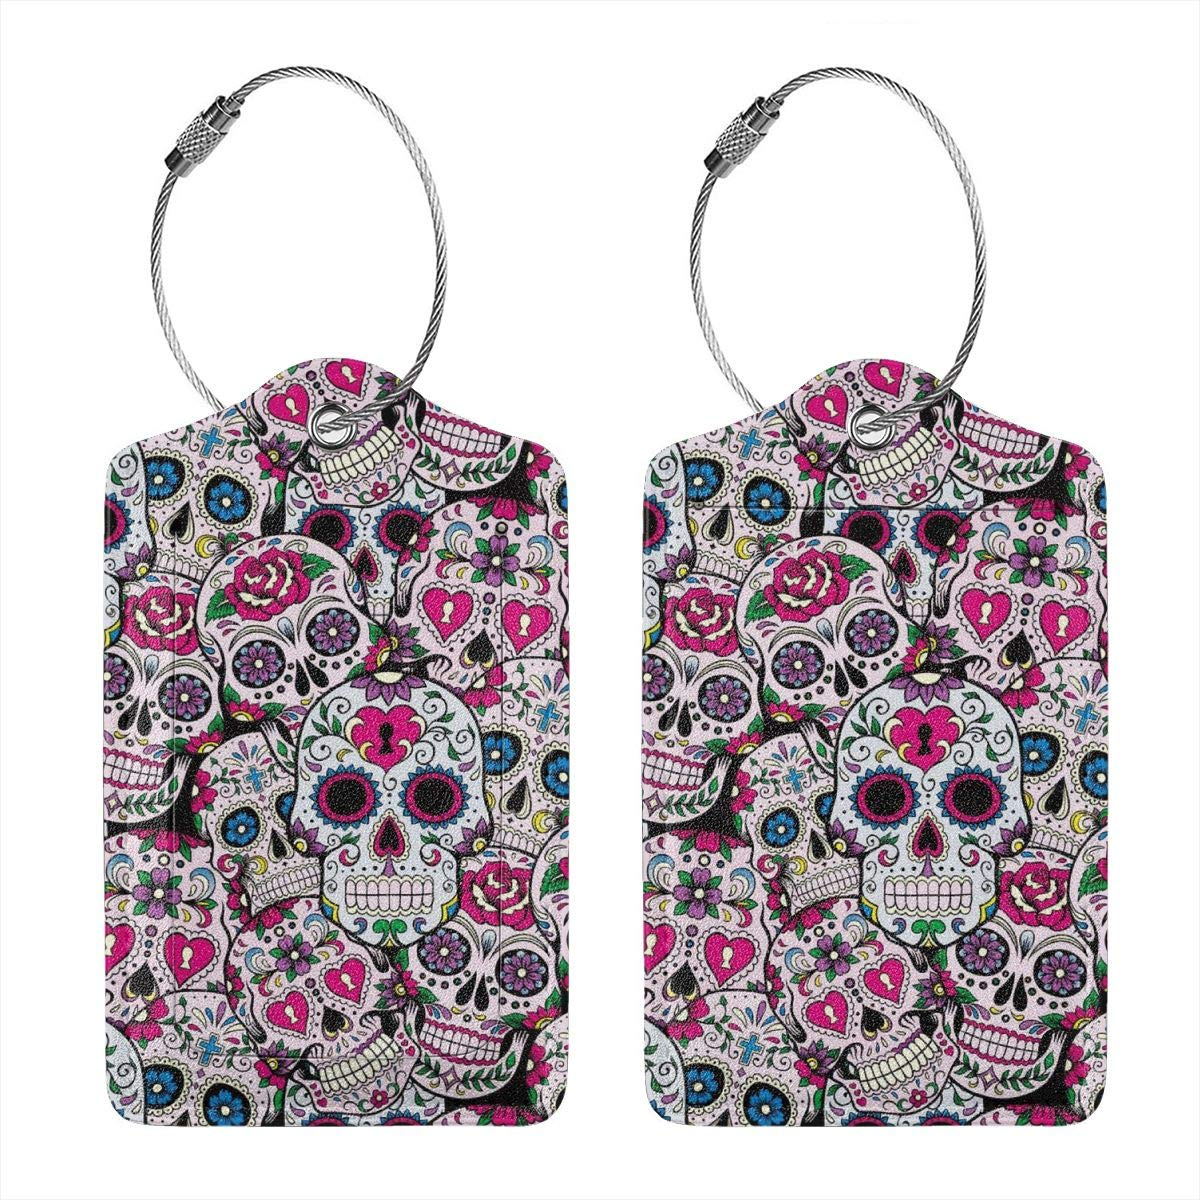 Sugar Skull Mexican Tradition Luggage Tag Label Travel Bag Label With Privacy Cover Luggage Tag Leather Personalized Suitcase Tag Travel Accessories